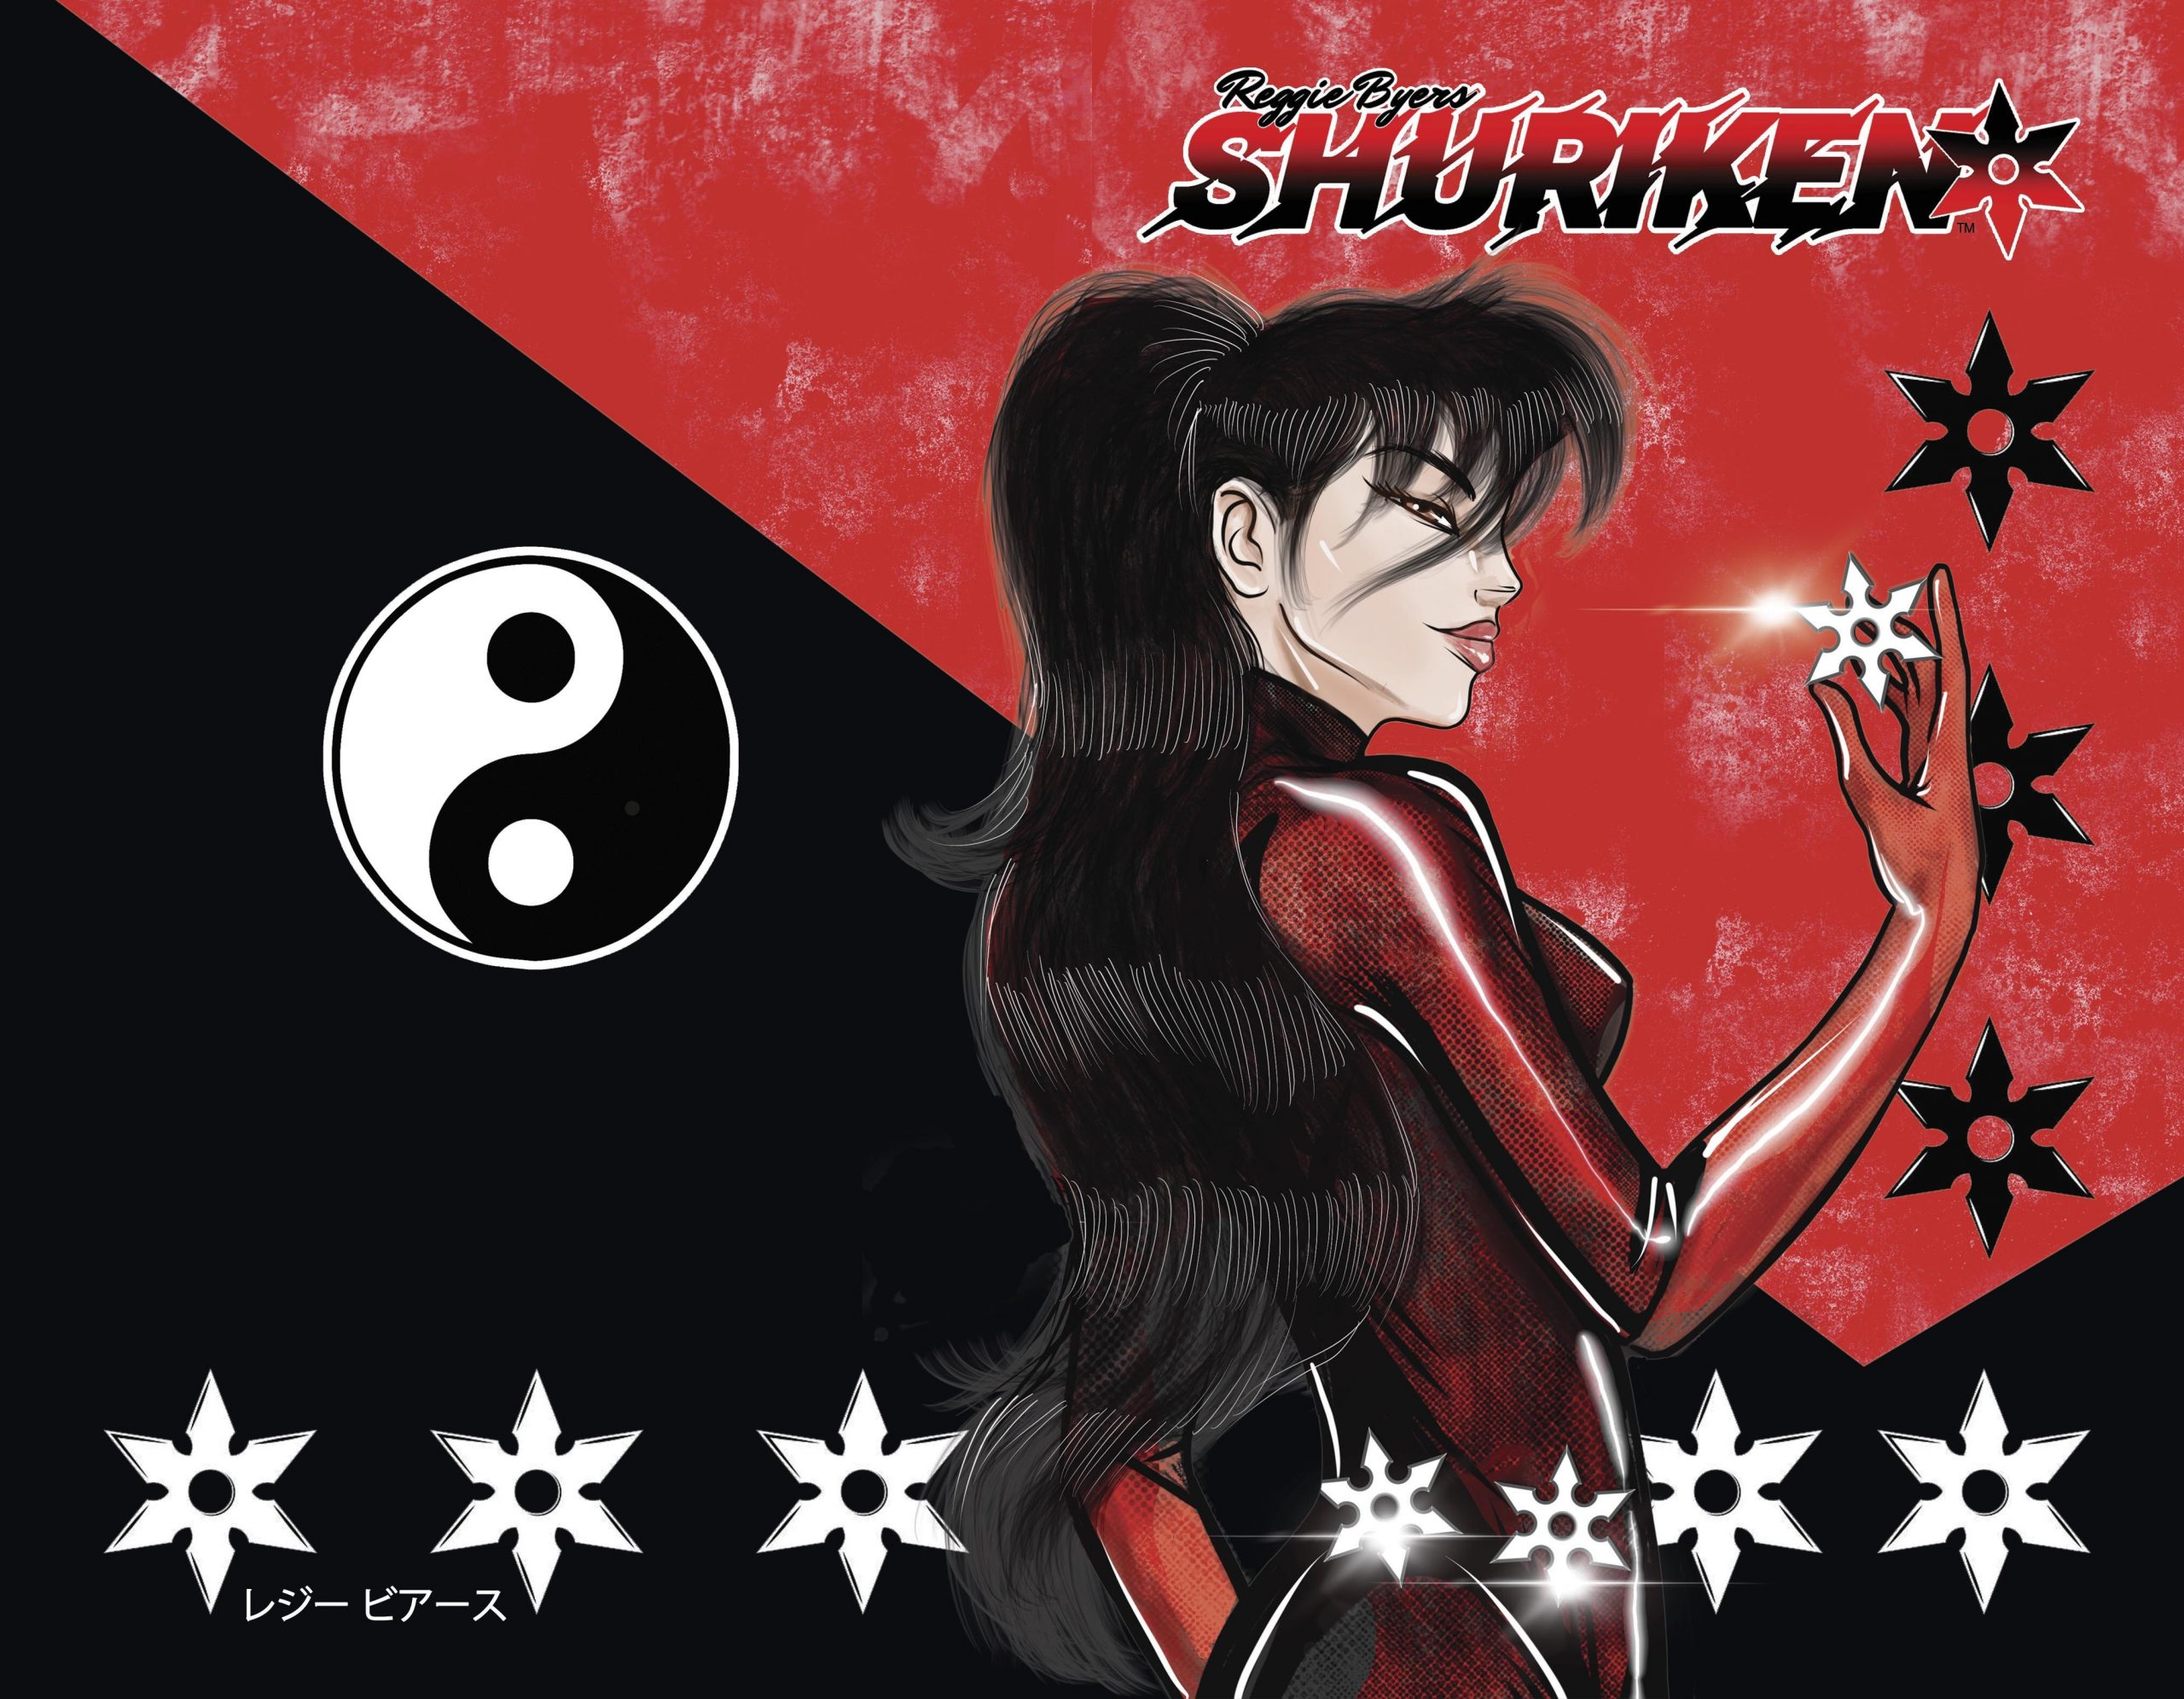 , Reggie Byers' SHURIKEN! The Return of the 1980's Manga Inspired Series, The Indie Comix Dispatch